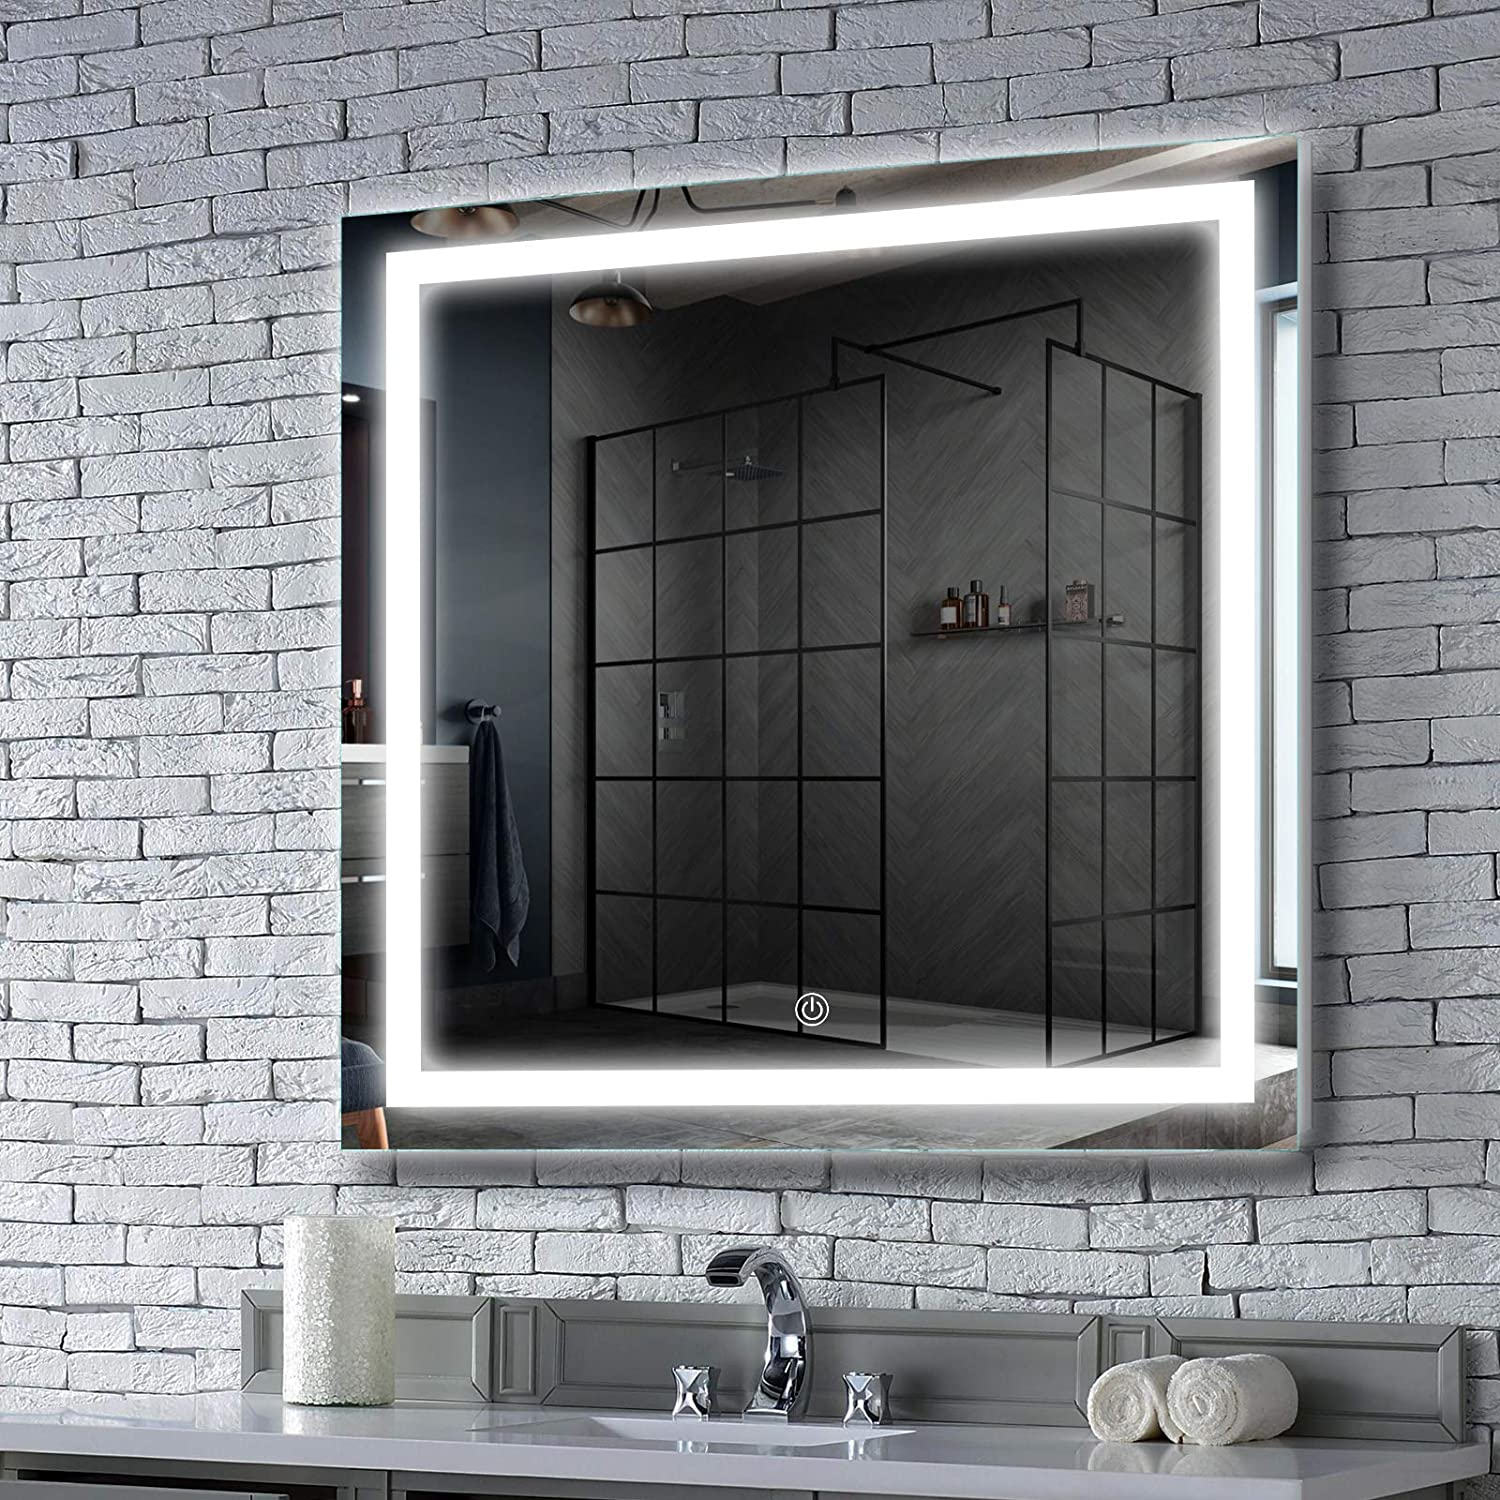 MAVISEVER 36 x Inch LED Wall Oklahoma City Mall Mirror Super sale period limited Mounted Lighted Bathroom